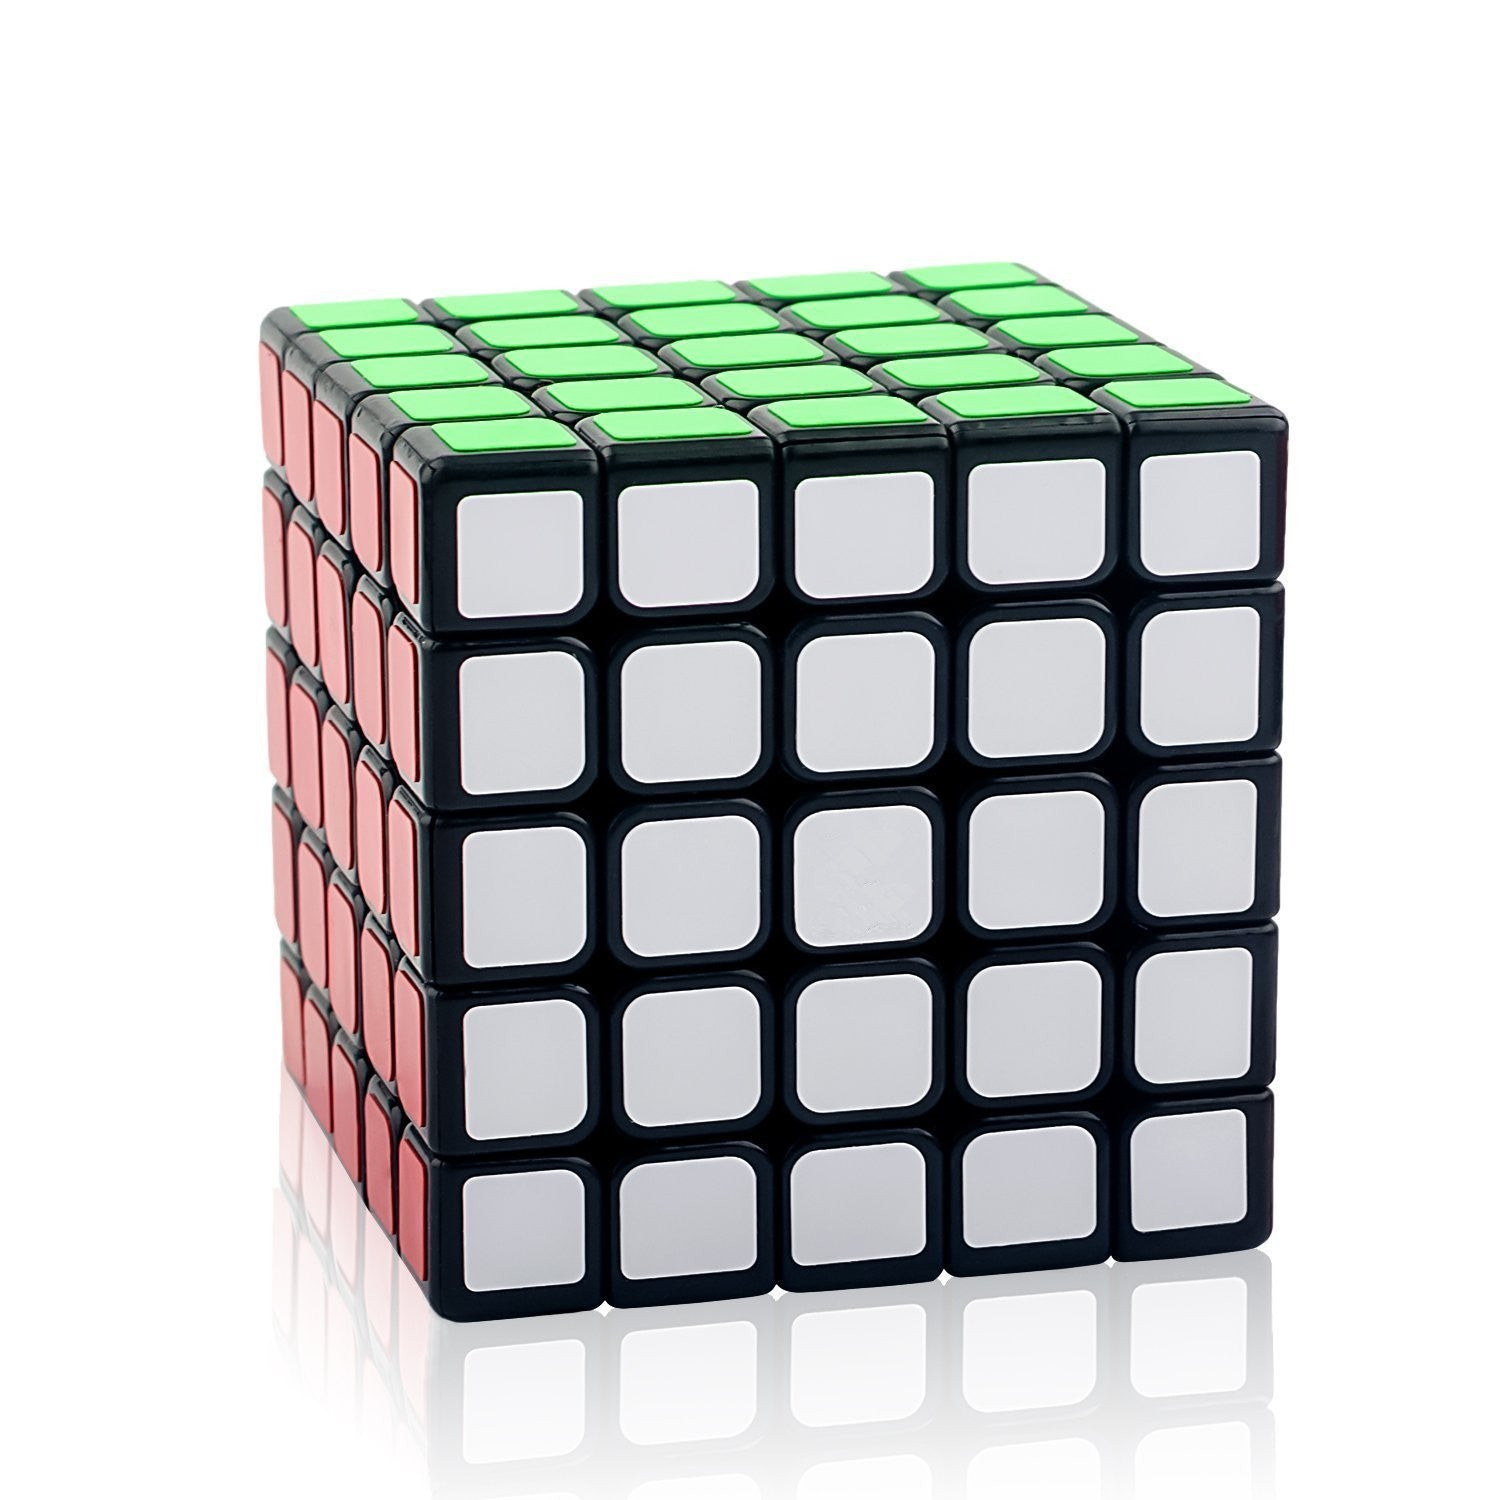 D-FantiX Yj Moyu 5x5 Speed Cube Black